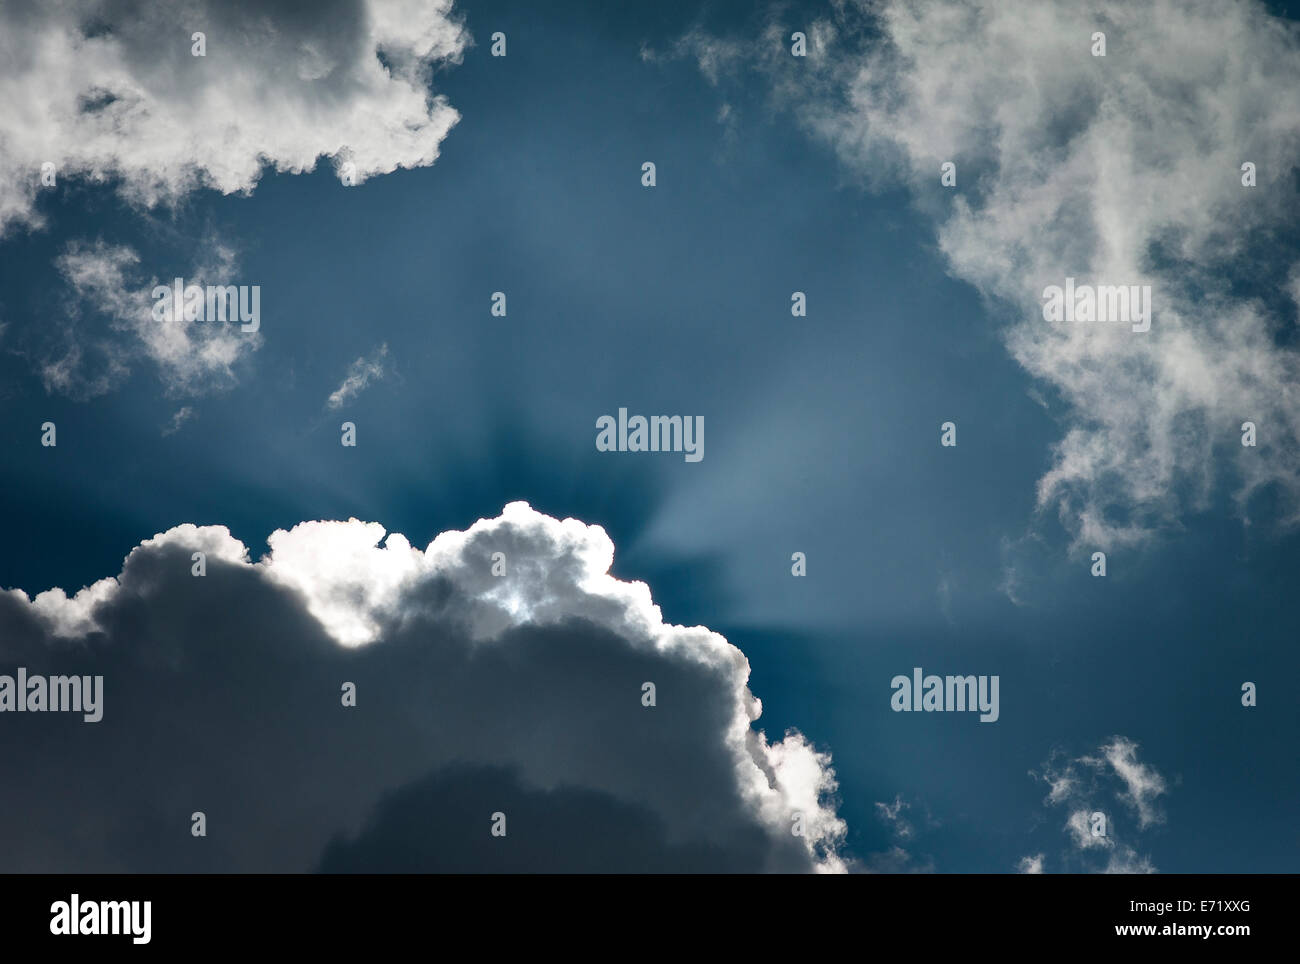 Dramatic lighting sky and clouds - Stock Image